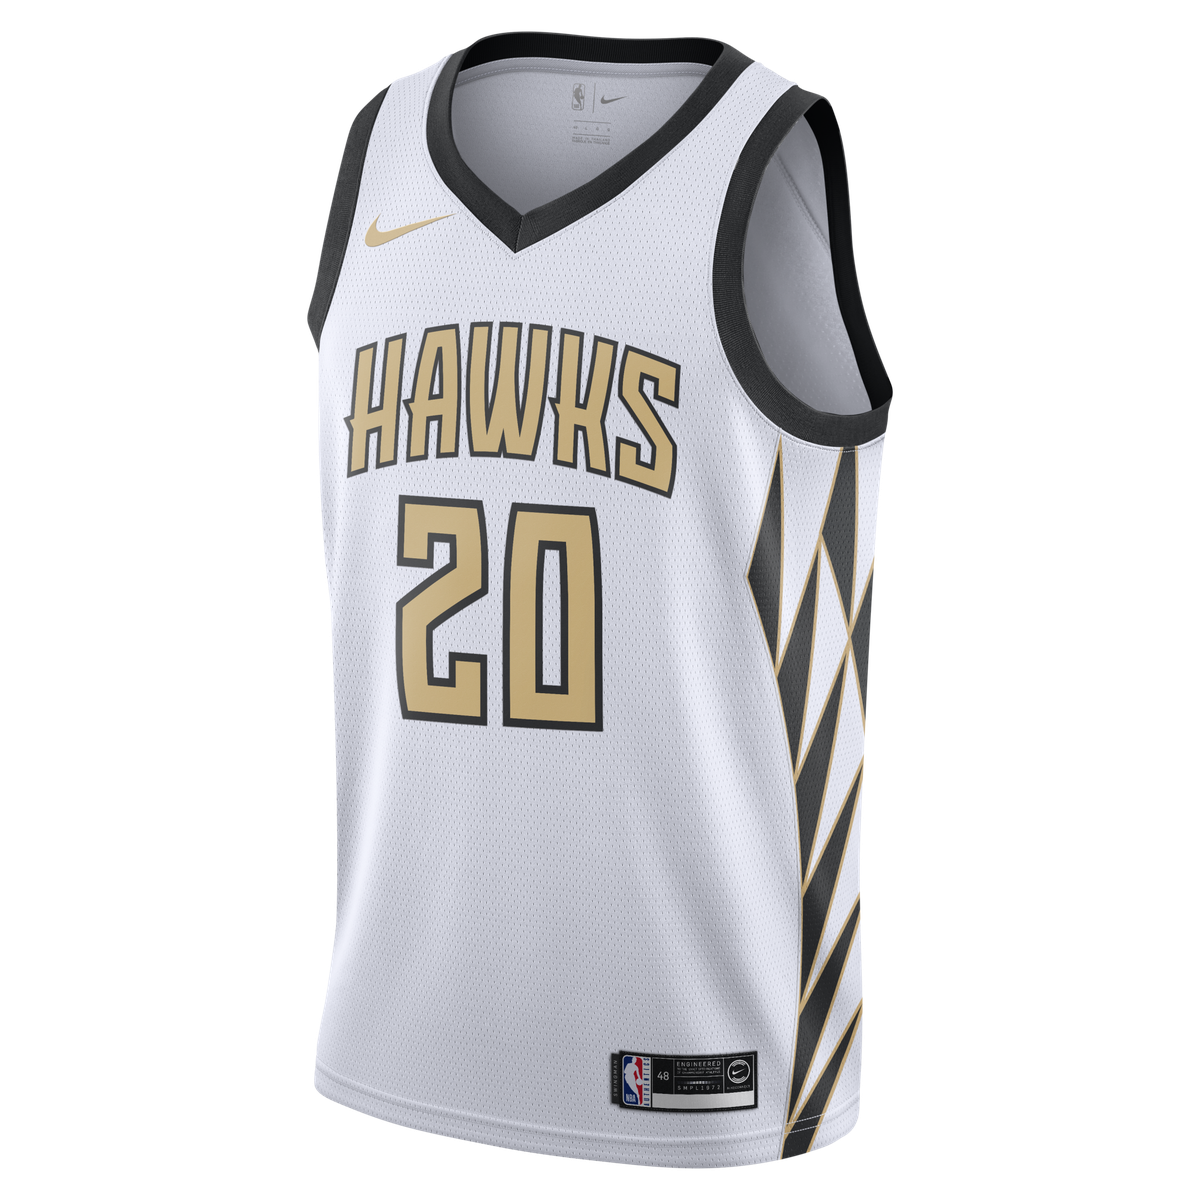 size 40 c233e 5aae1 NBA City Edition: The jerseys, T-shirts and merch you can ...